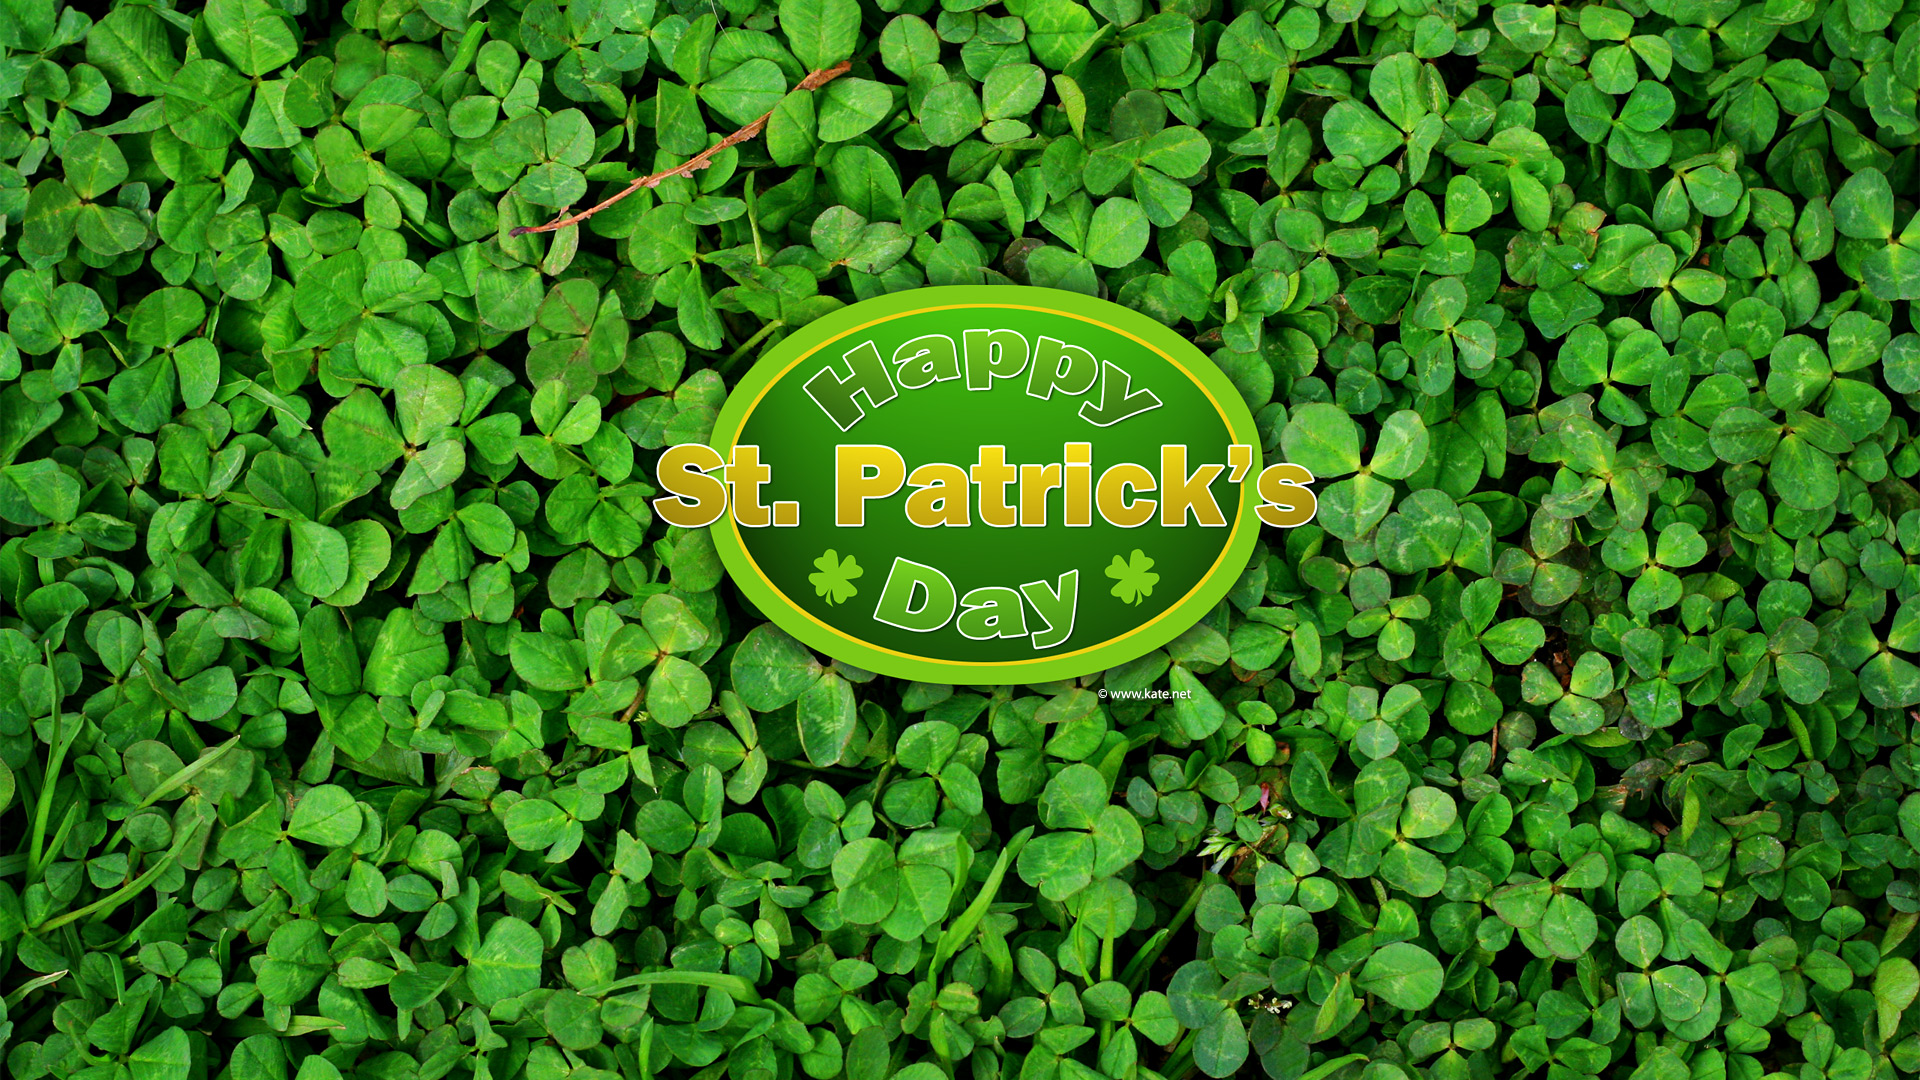 st Patricks Day Wallpaper images 1920x1080